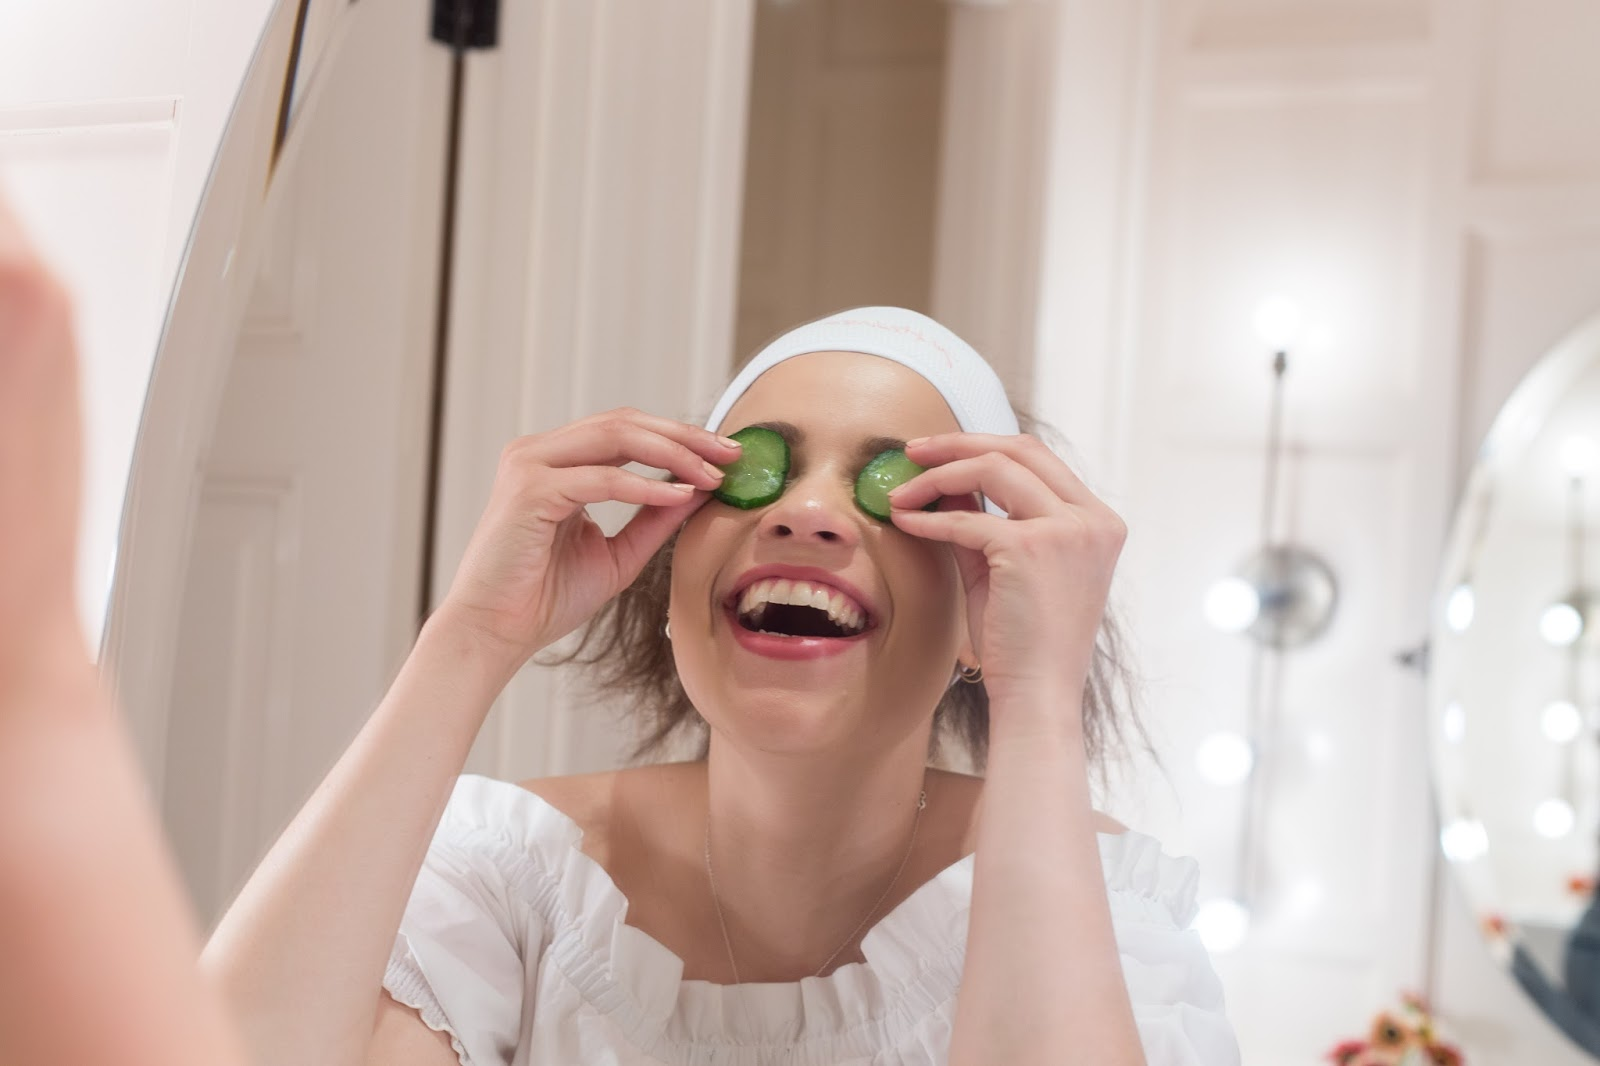 Image of Eboni laughing at the mirror whilst holding cucumber up to her eyes